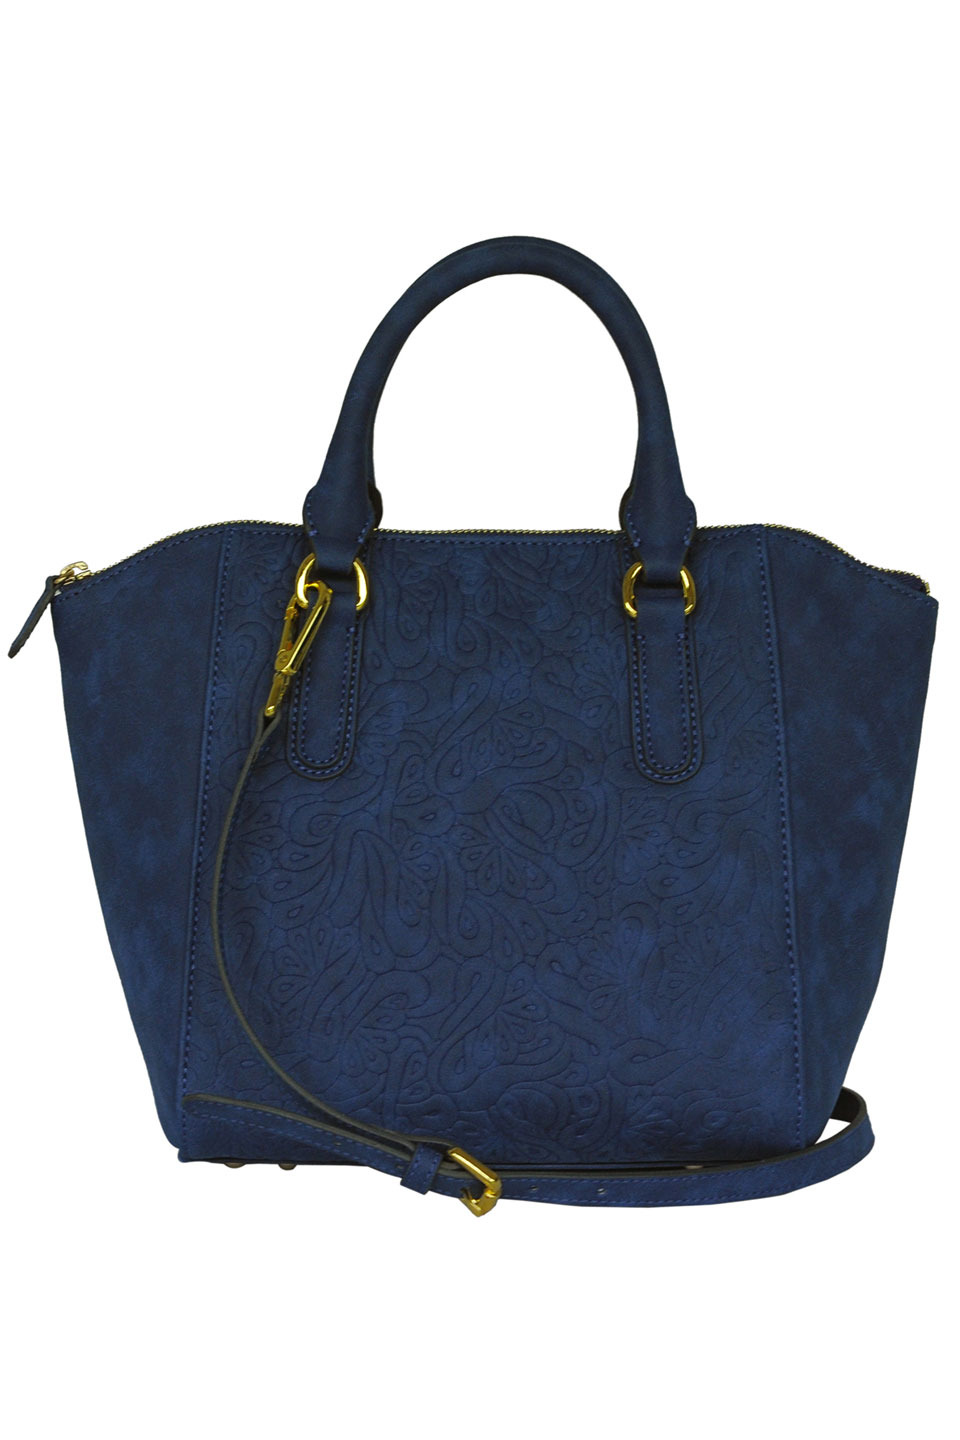 LOIS LAMB LEATHER HANDBAG IN DARK BLUE